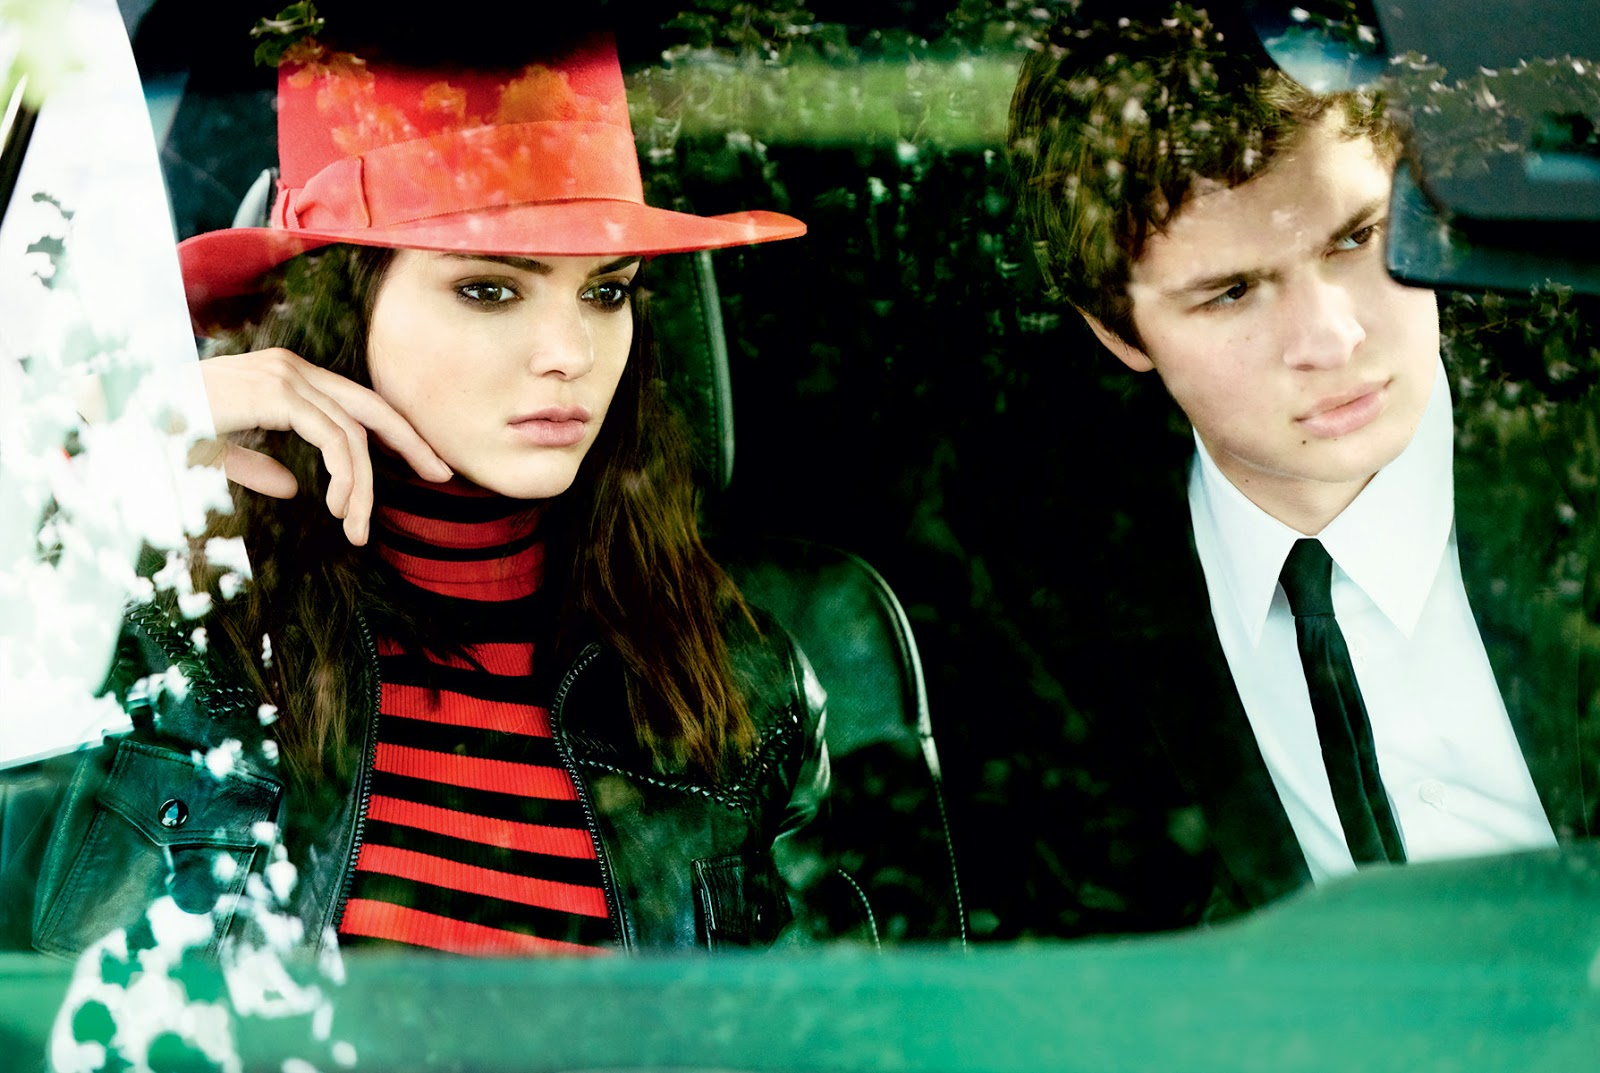 Kendall Jenner and Ansel Elgort for Vogue US